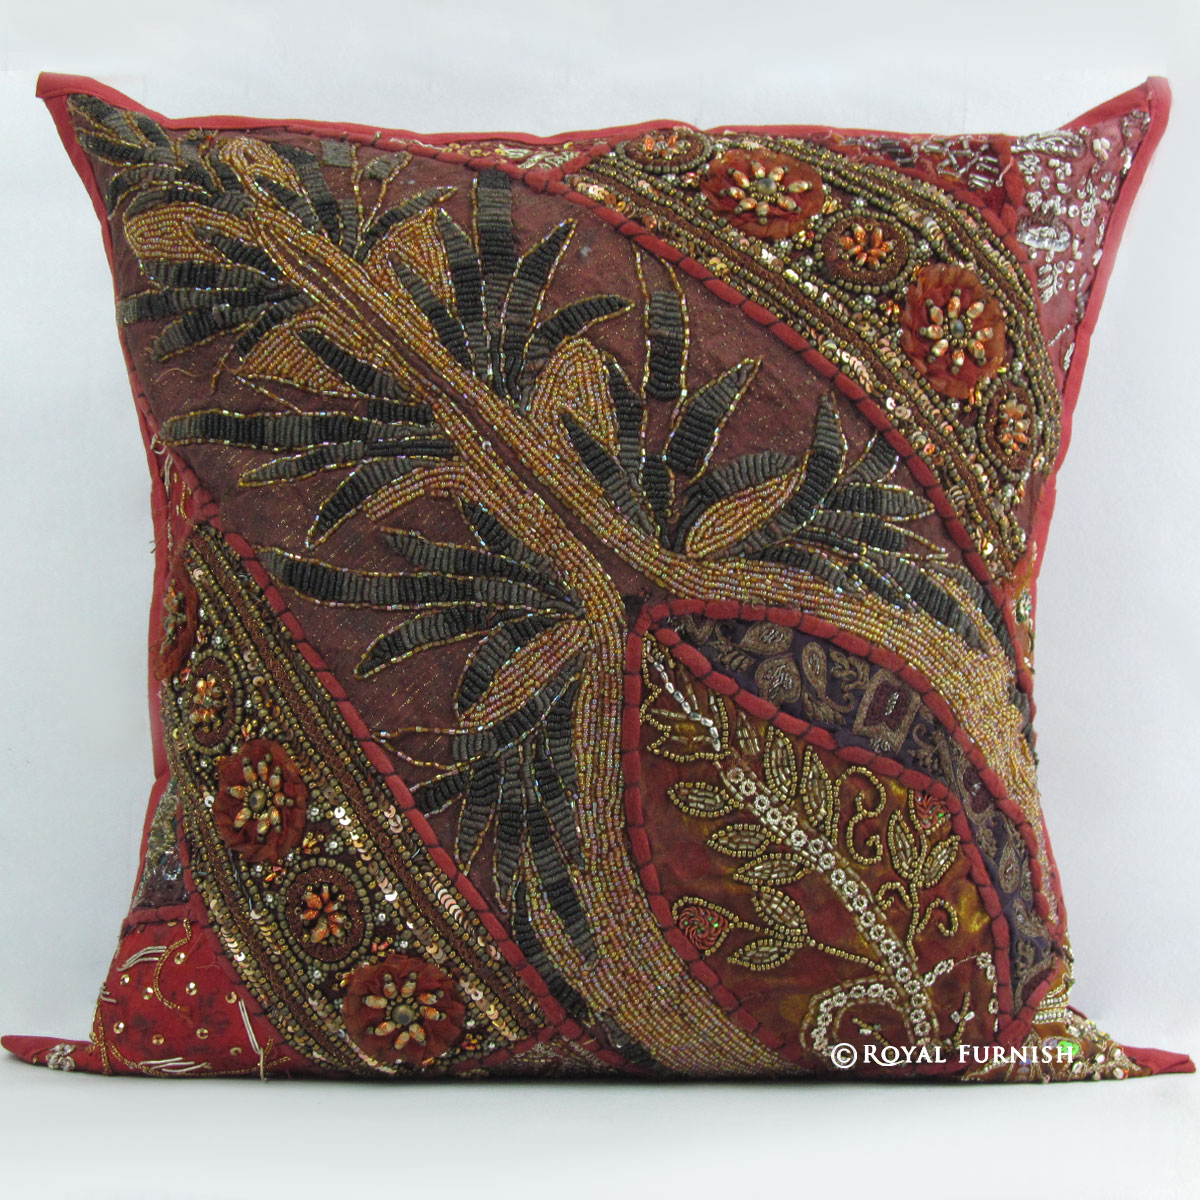 Red Indian Beaded Embroidered Patchwork Decorative Throw Pillow Case Sham - RoyalFurnish.com